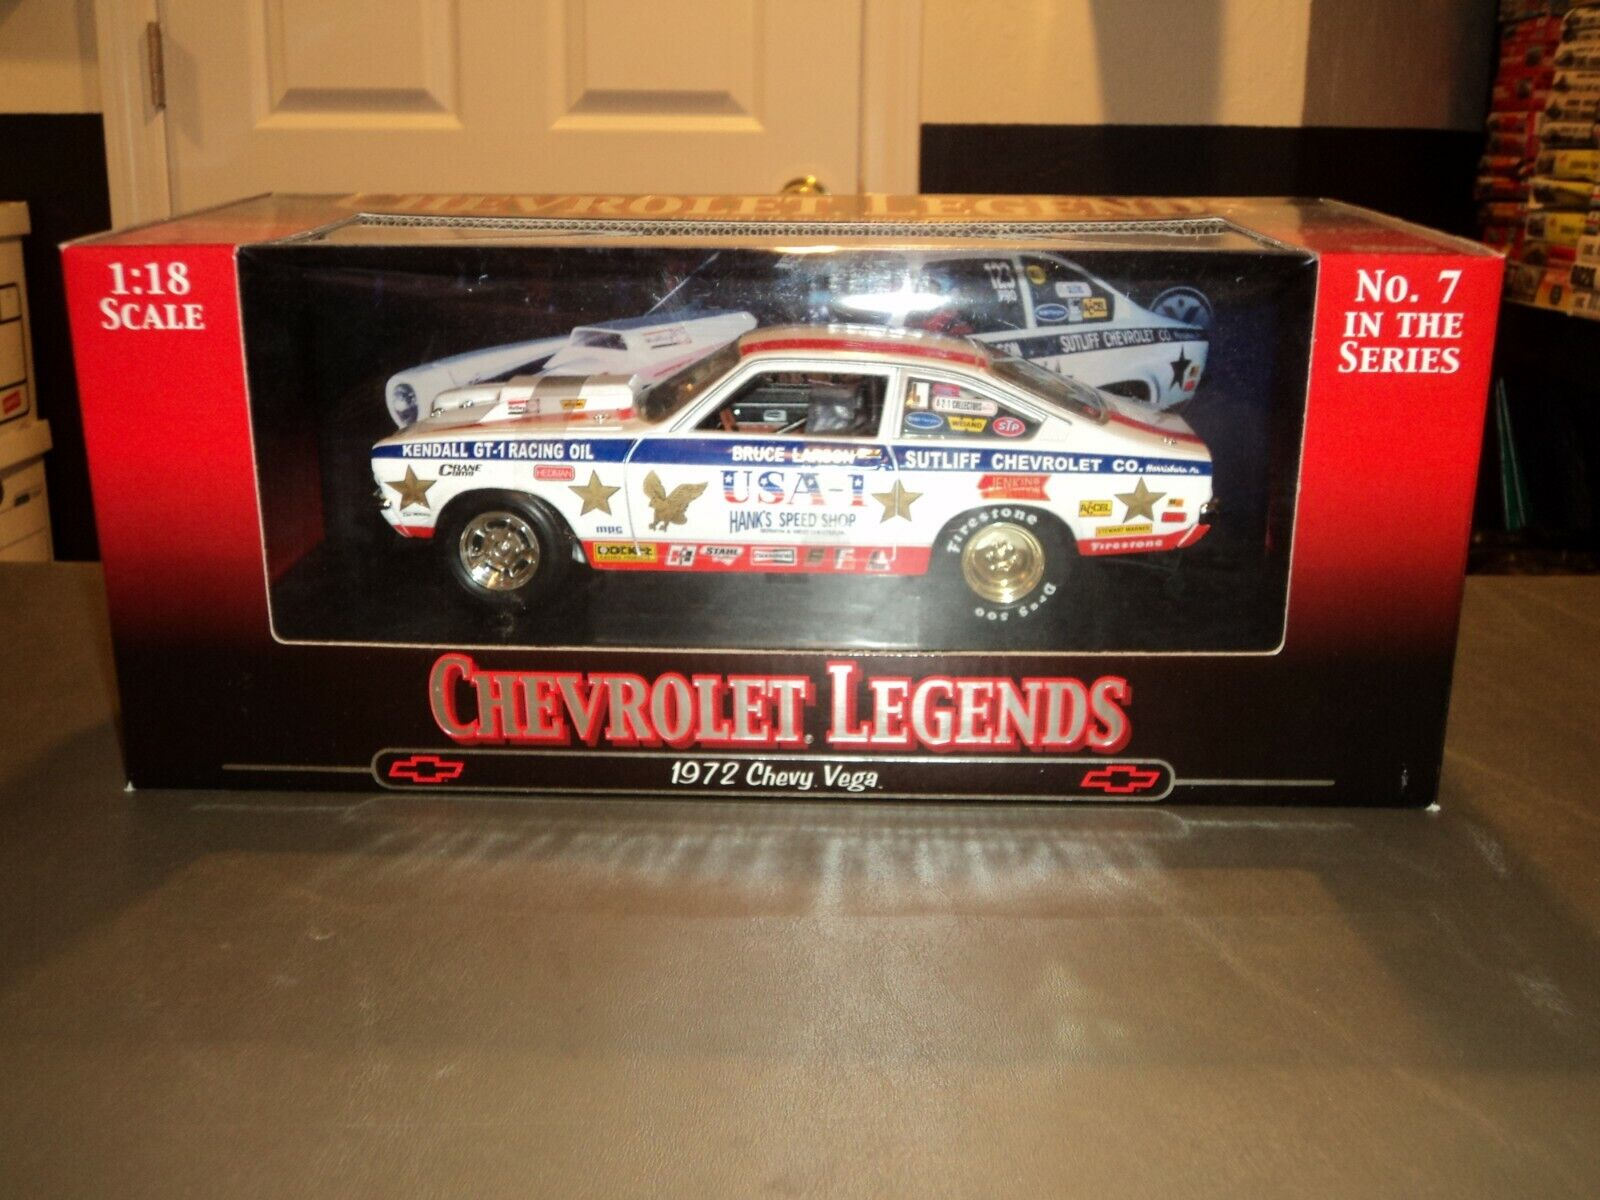 solo para ti Nuevo Ertl Chevrolet Legends Legends Legends  7 1 18 1972 Chevy Vega Die Cast Bruce Larson USA-1  70% de descuento